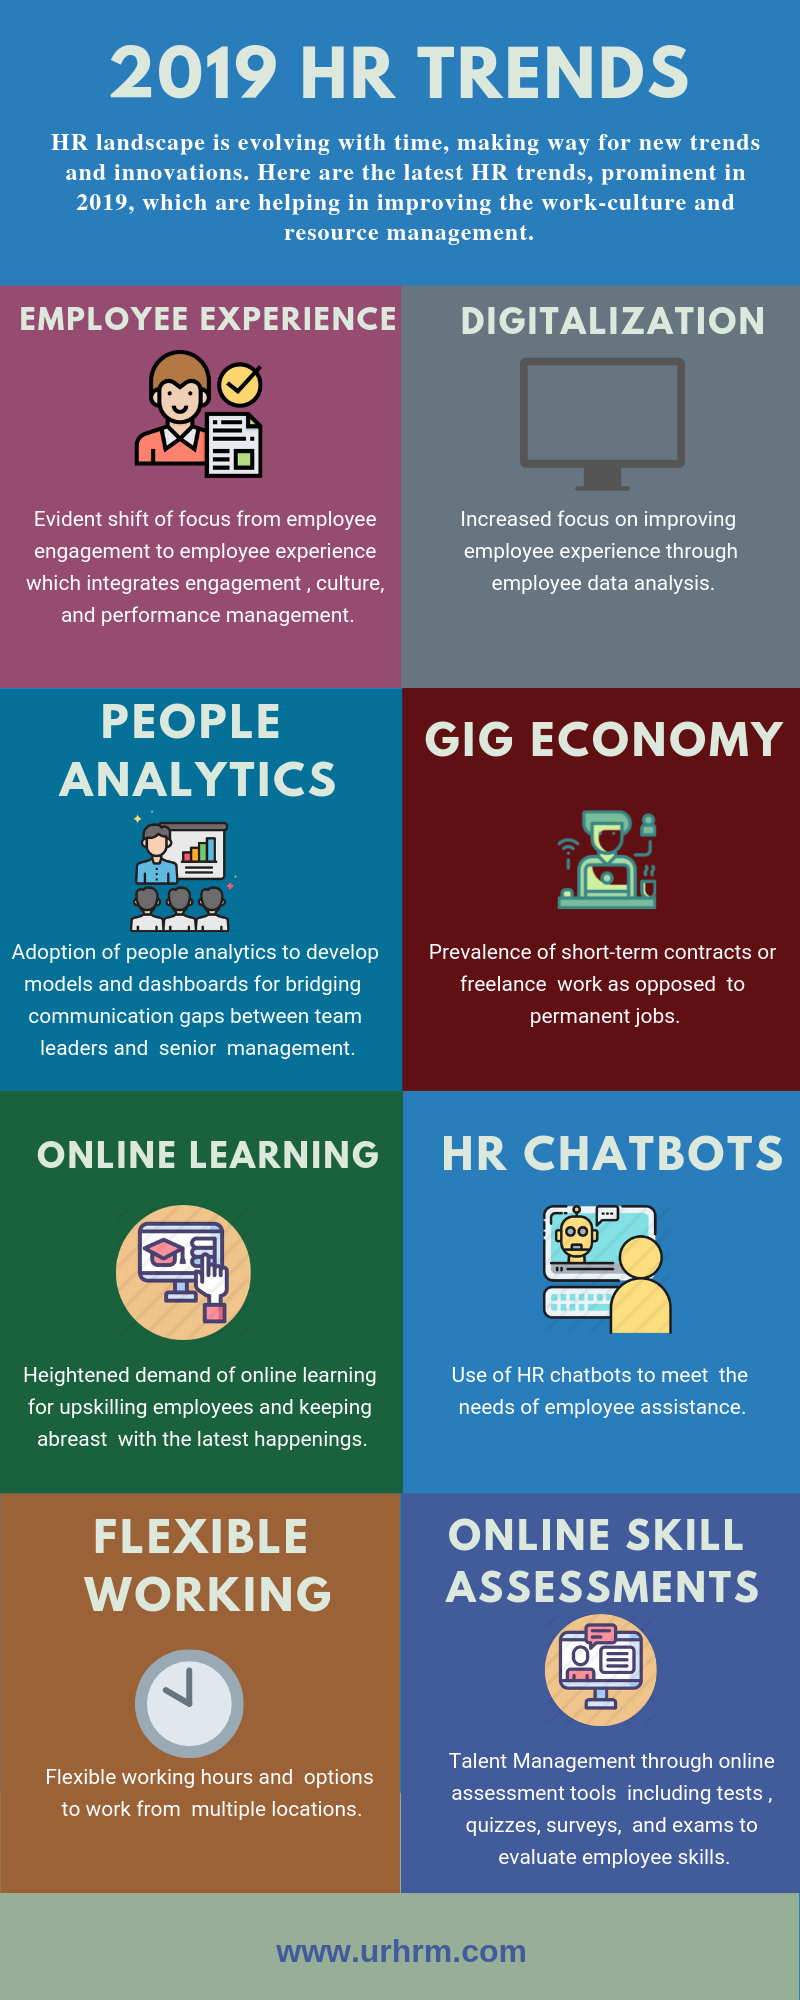 Pin by UrHRM on HR Trends 2019 - 20 | Hr management, Free